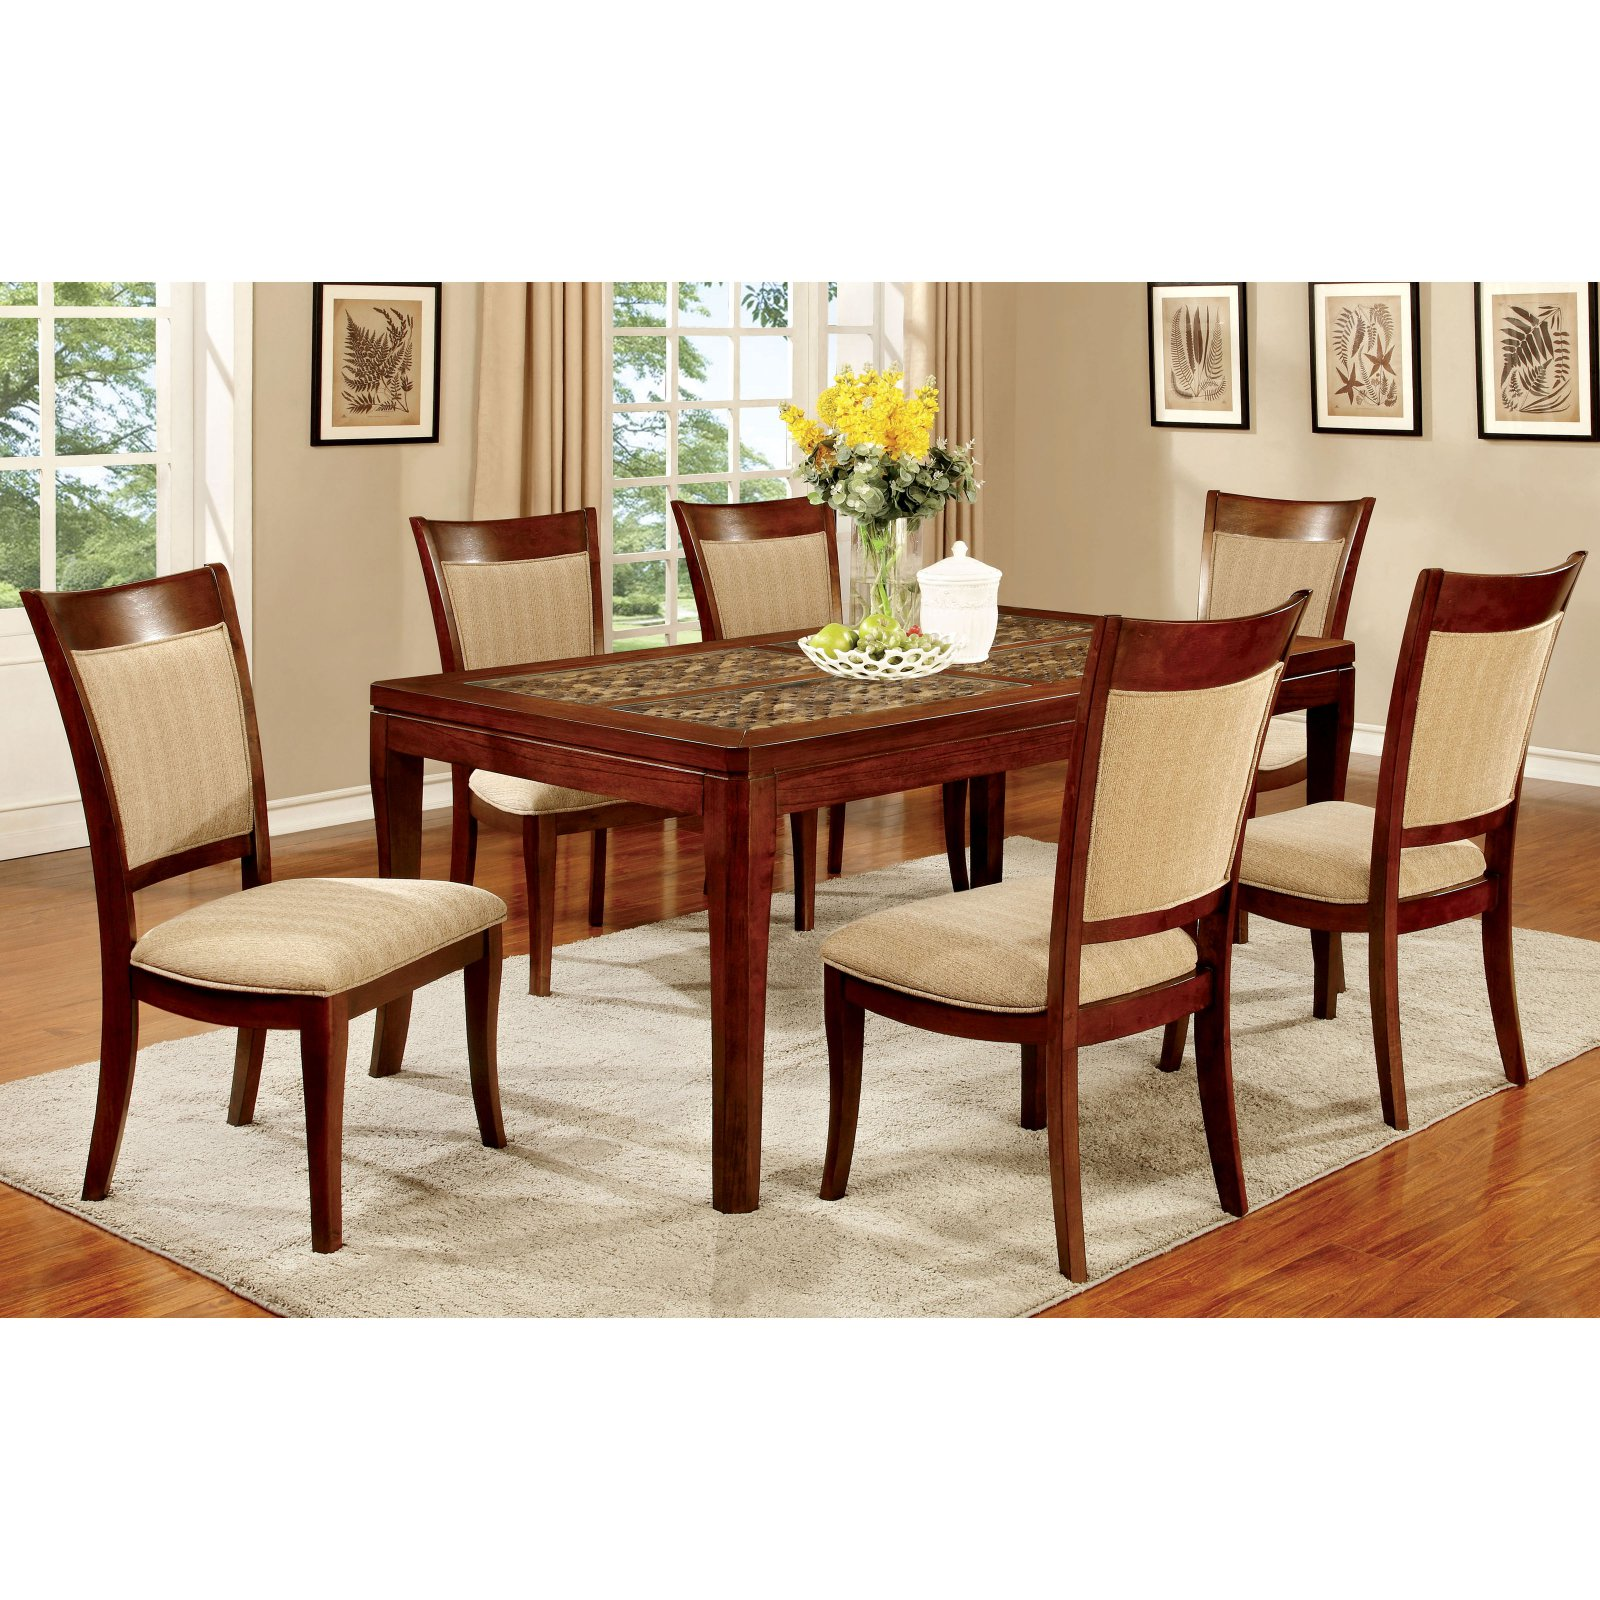 Furniture of America Creekmore 66 in. Dining Table with Woven Table Top Design